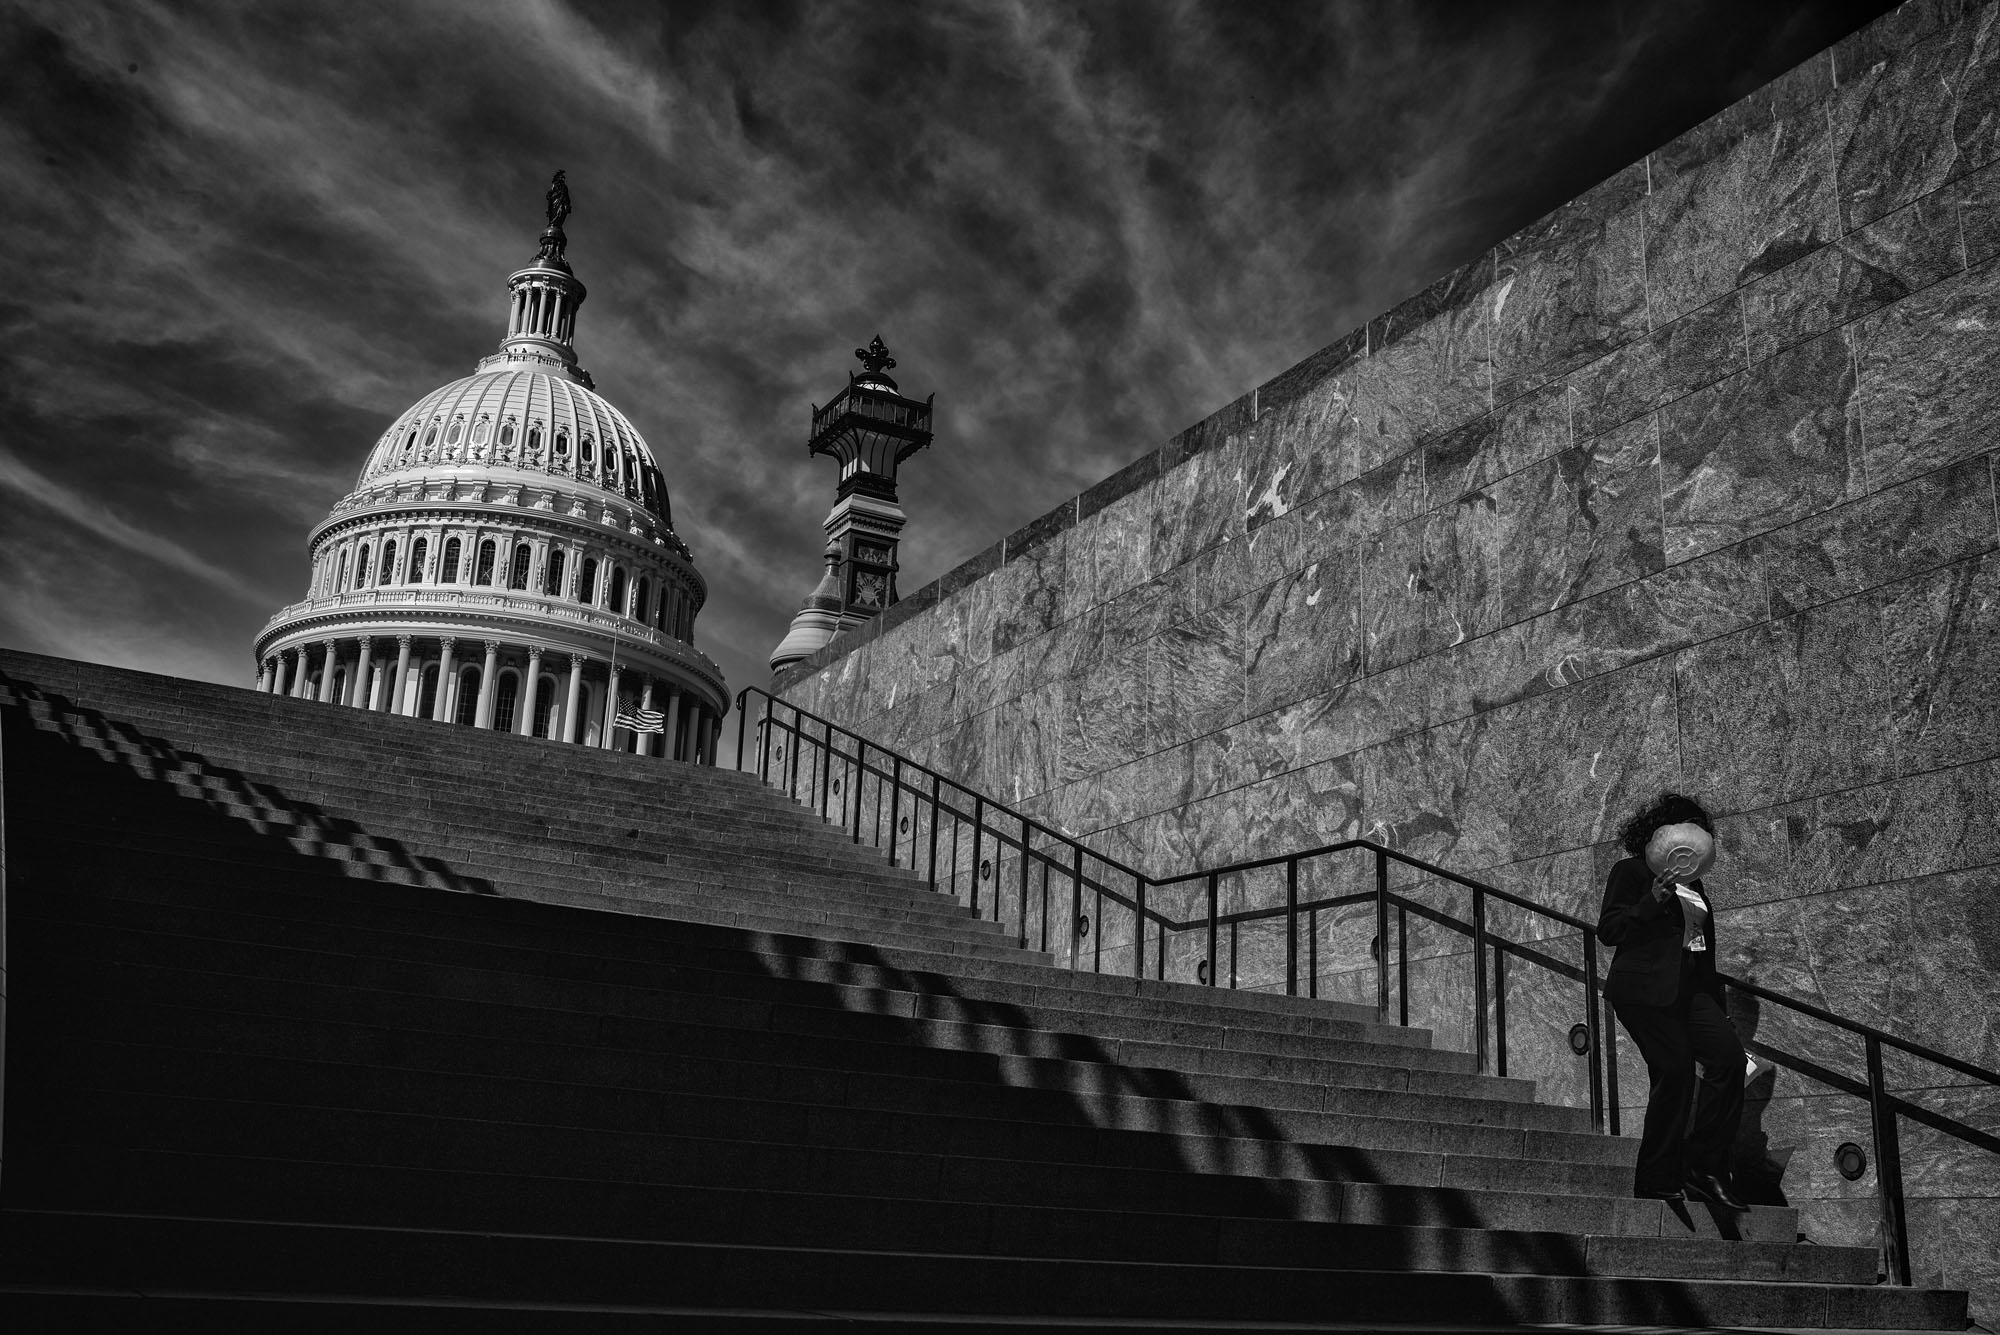 A woman walks down the stairs near the US Capitol Visitor's Center, on February 24, 2017.